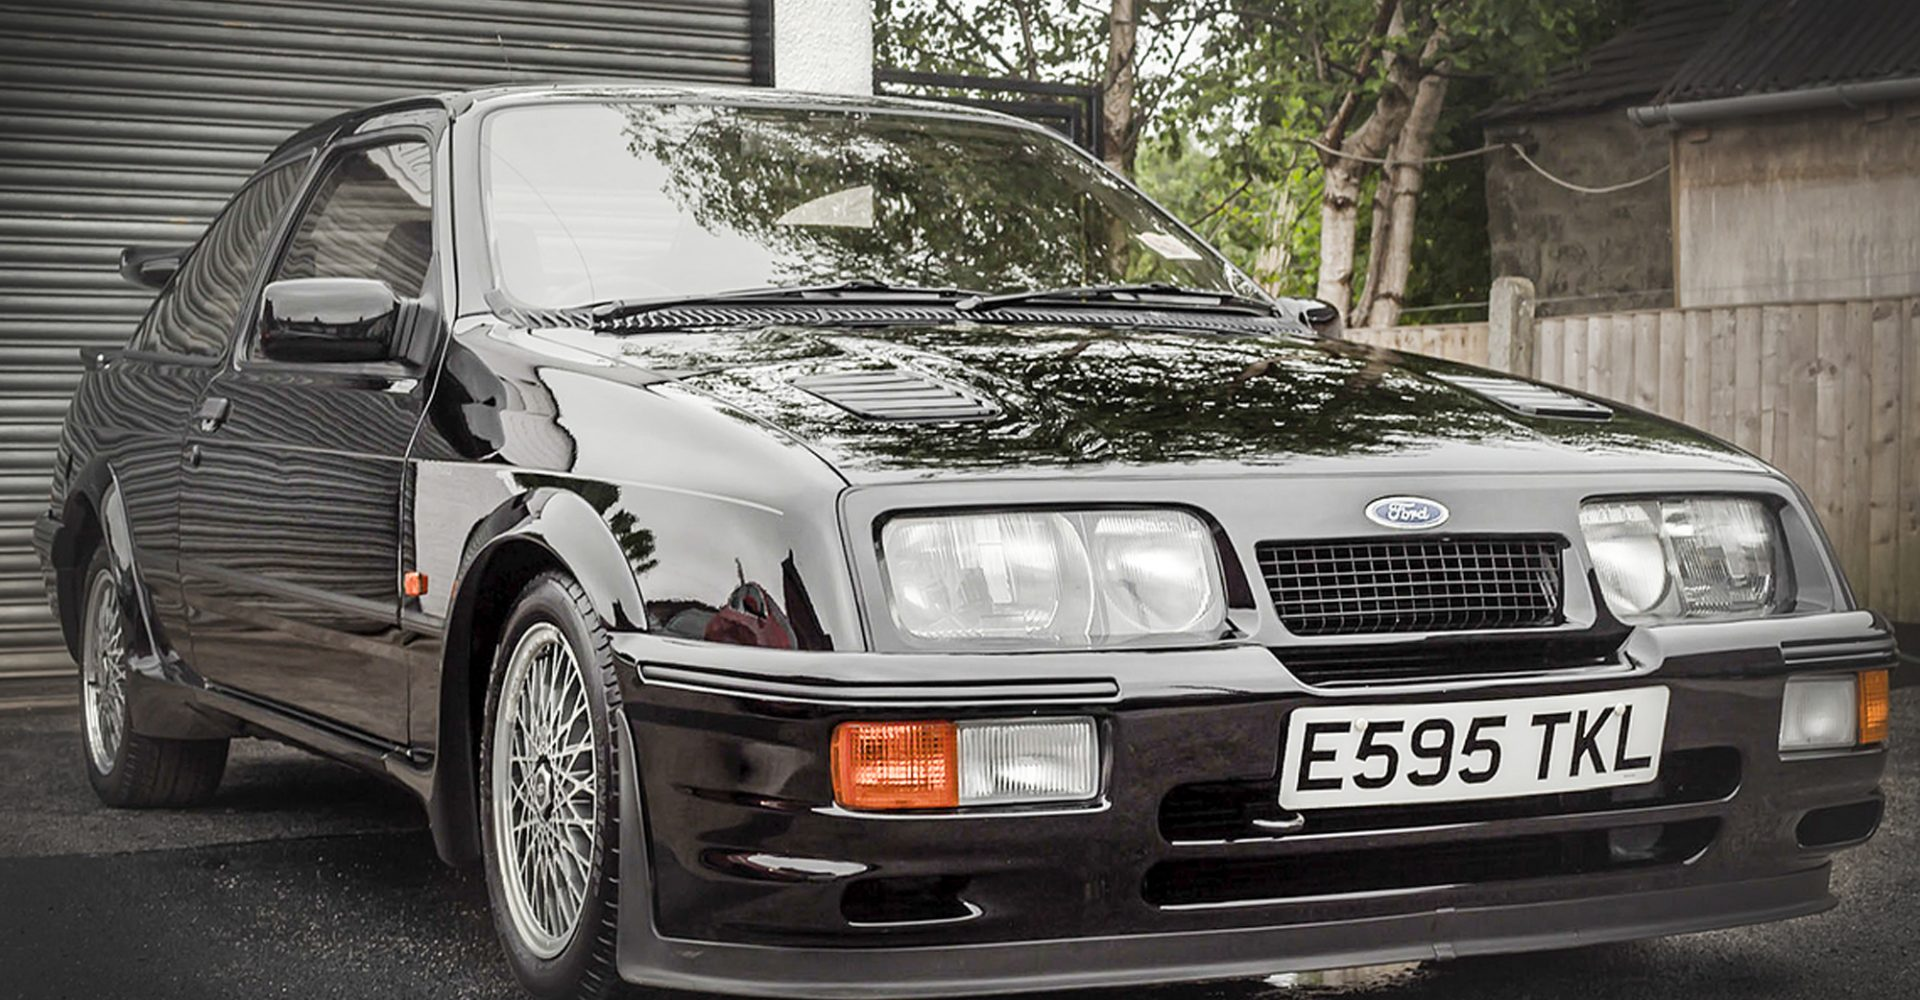 Classic car values go sky high as ford sierra cosworth rs500 fetches more than £100000